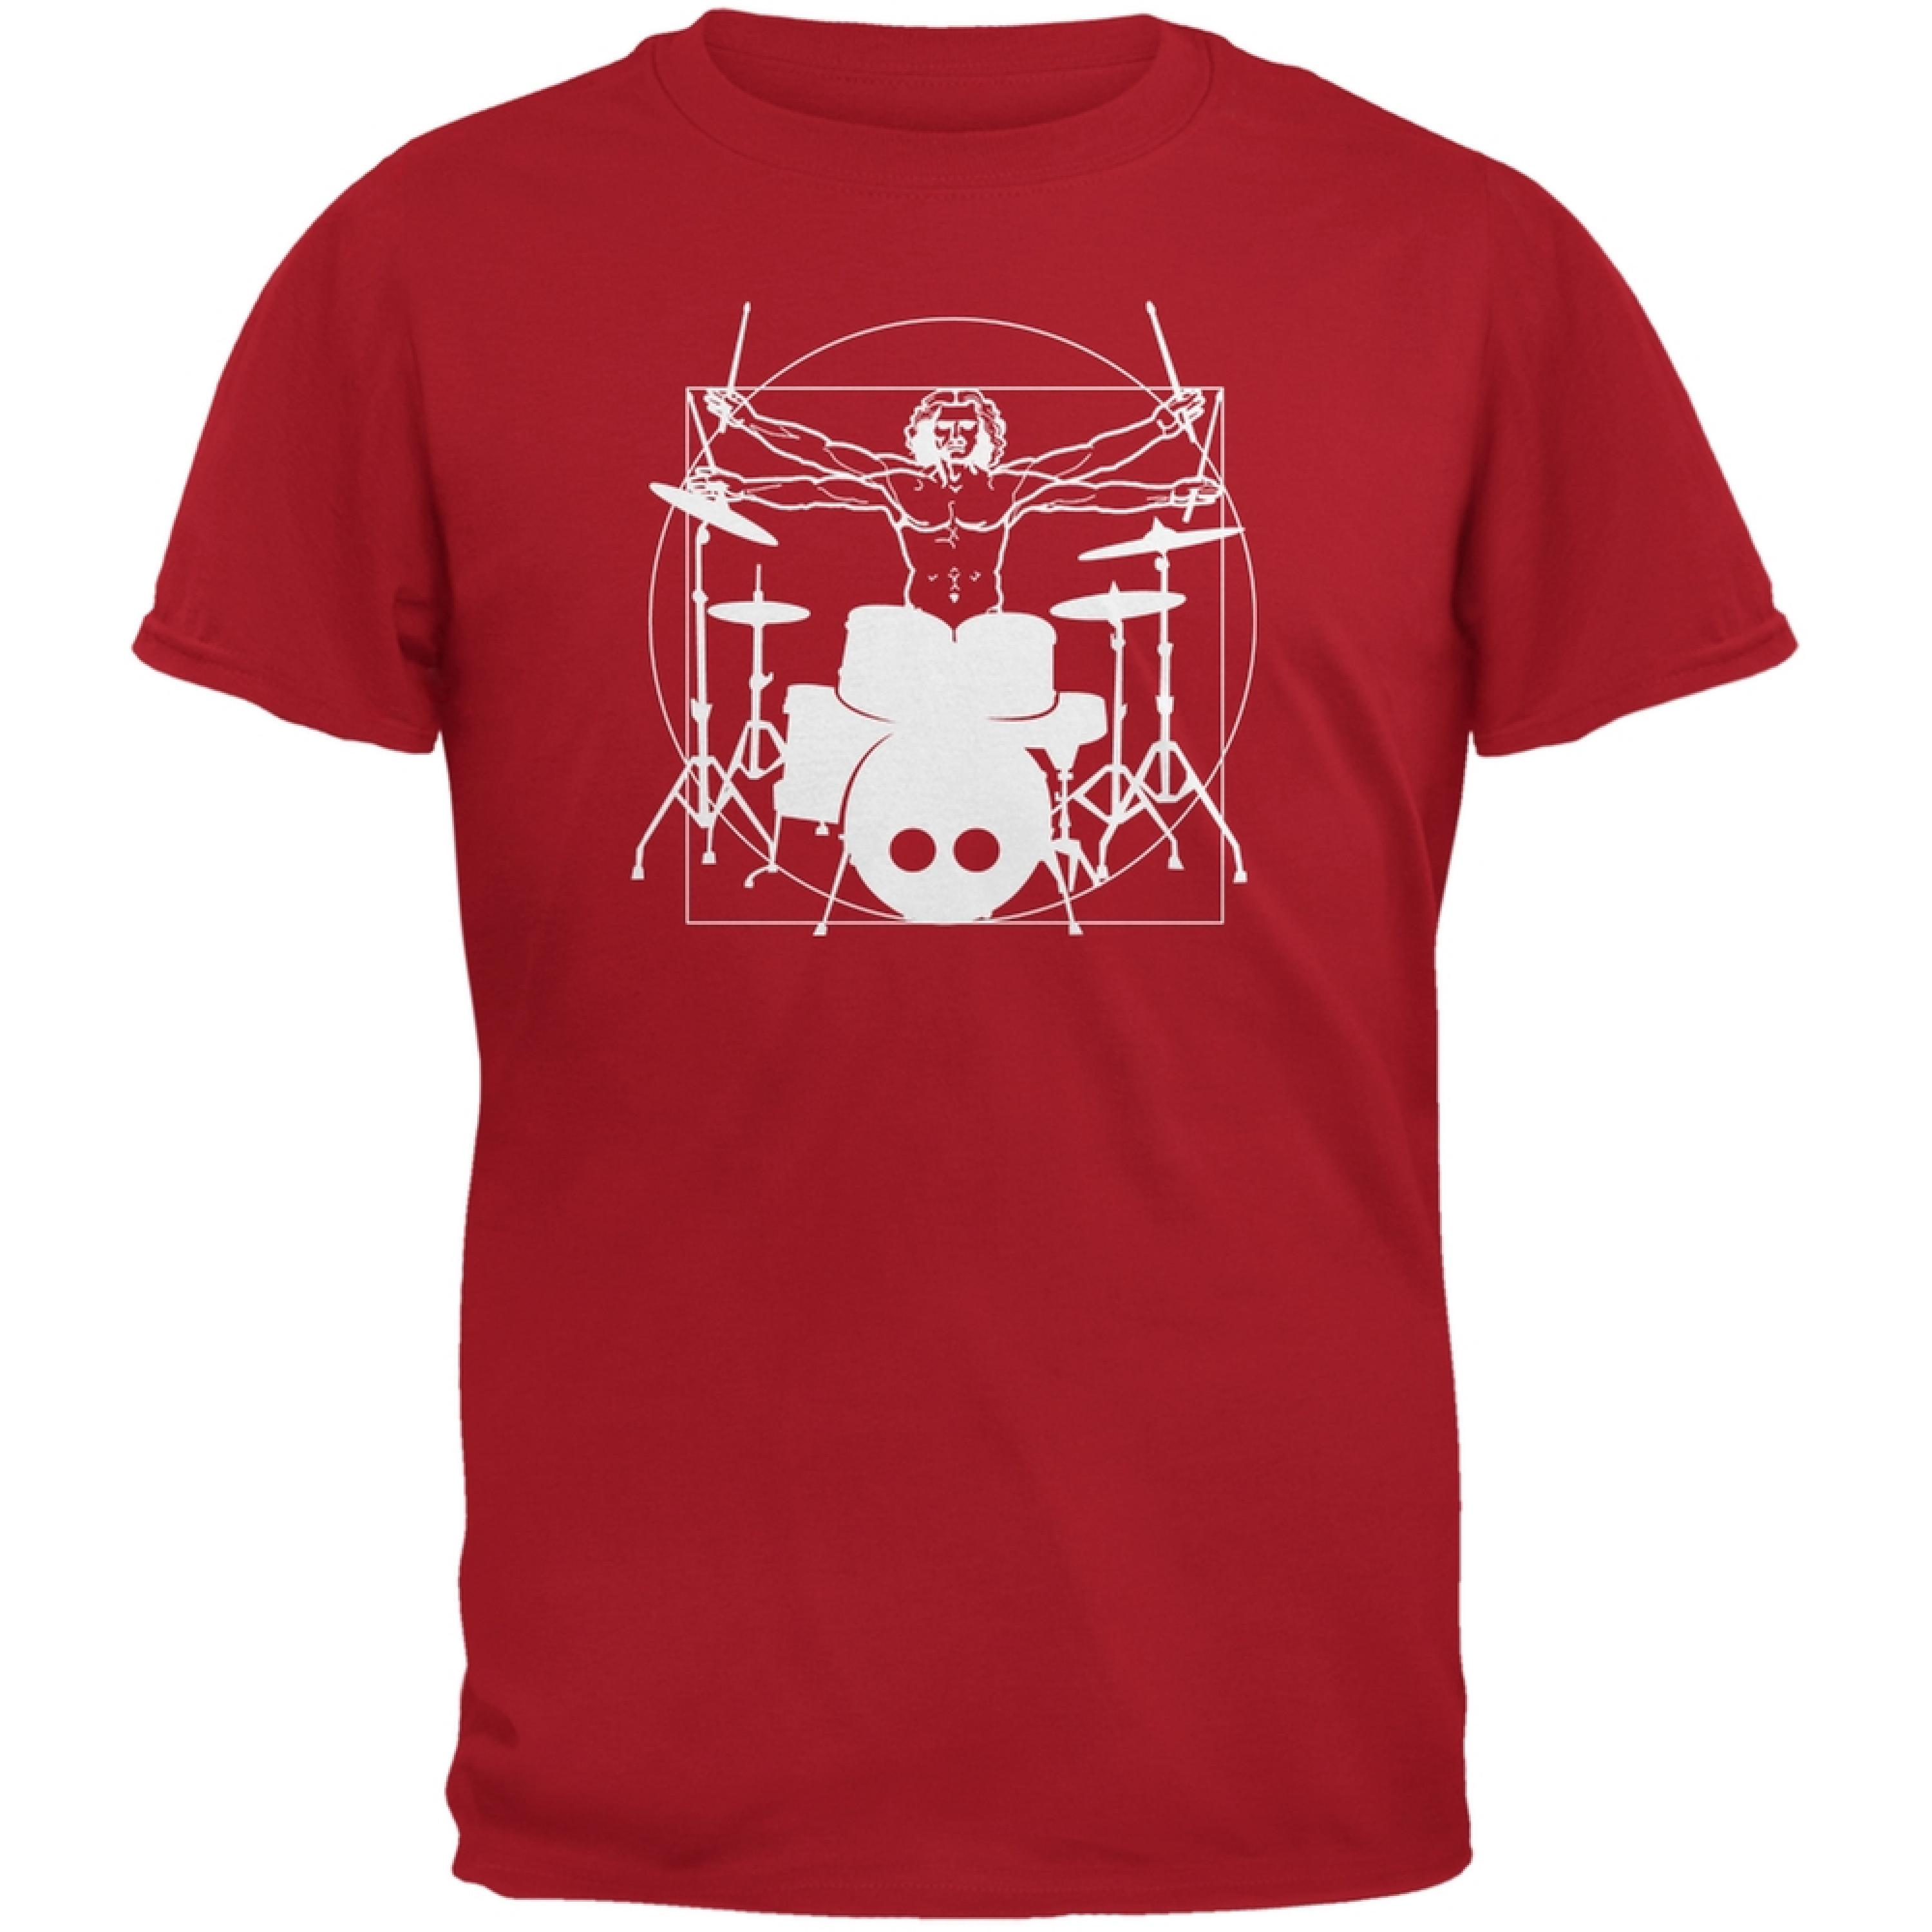 Vitruvian Man Drummer Red Adult T-Shirt